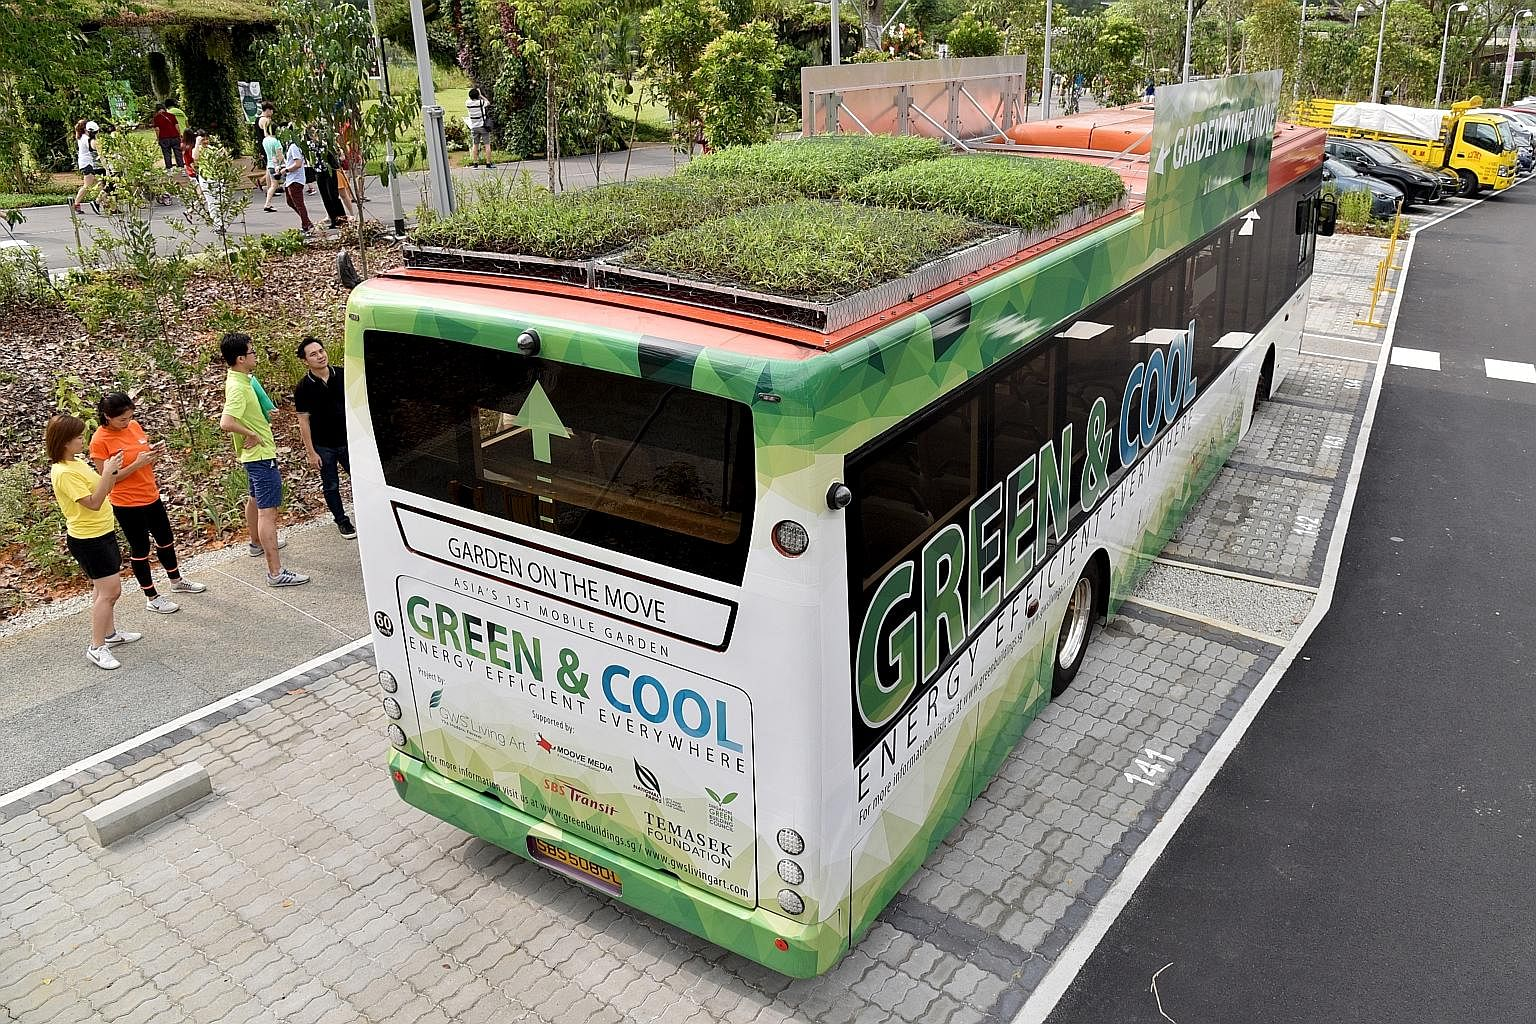 a green bus - with a garden on its roof. Singapore's first public buses with plants on top hit the road yesterday. The initiative by urban greenery specialist GWS Living Art is part of a three-month study to see wh